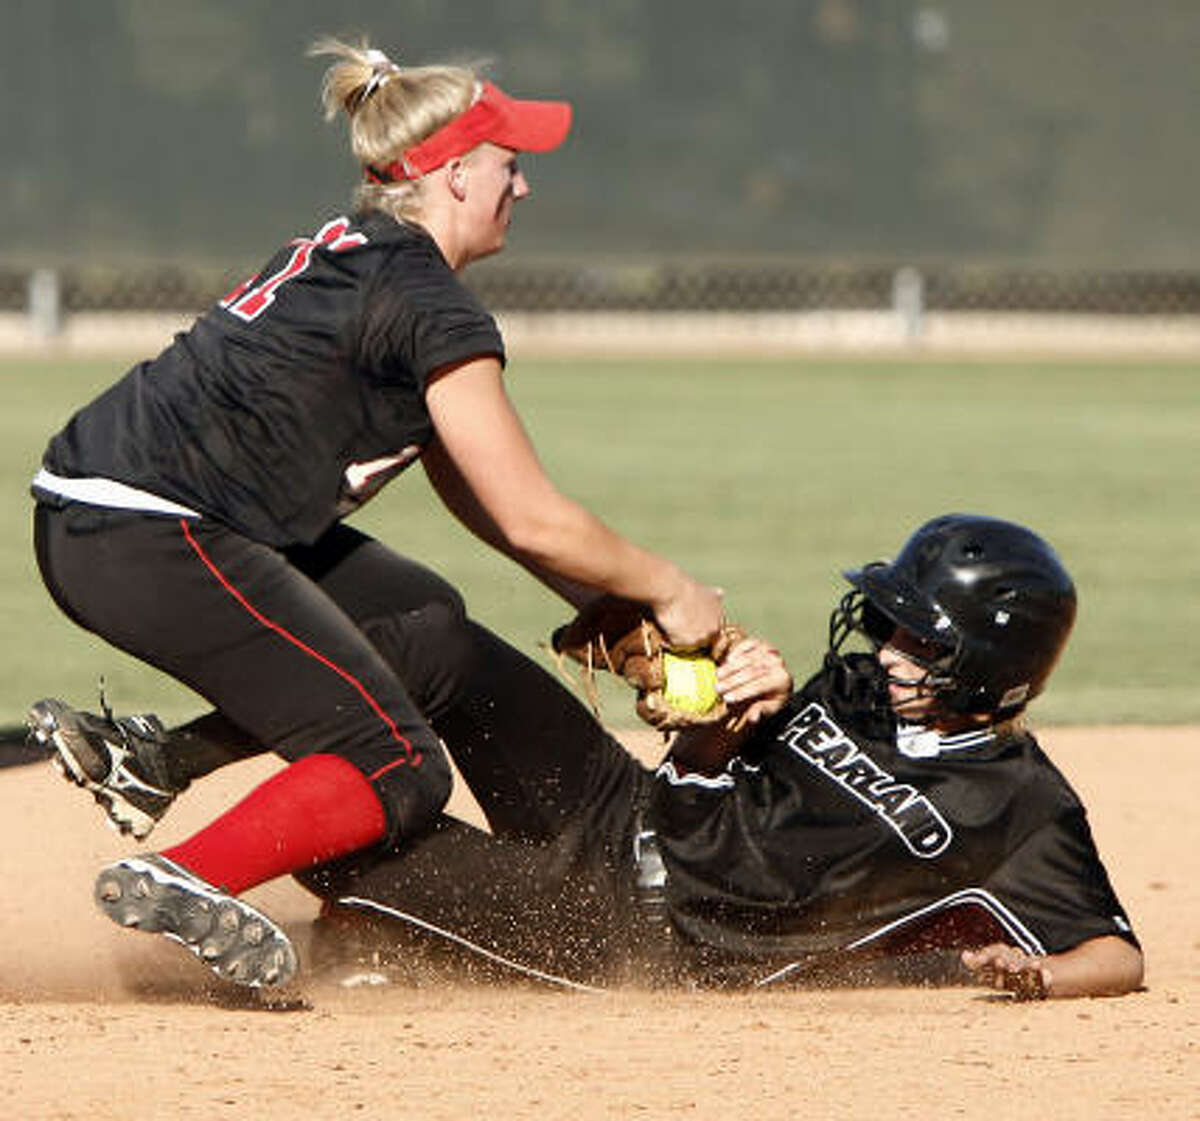 Vista Ridge shortstop Taylor Thom blocks the path of Pearland's Courtney Sams, who was tagged out while attempting to steal second base.